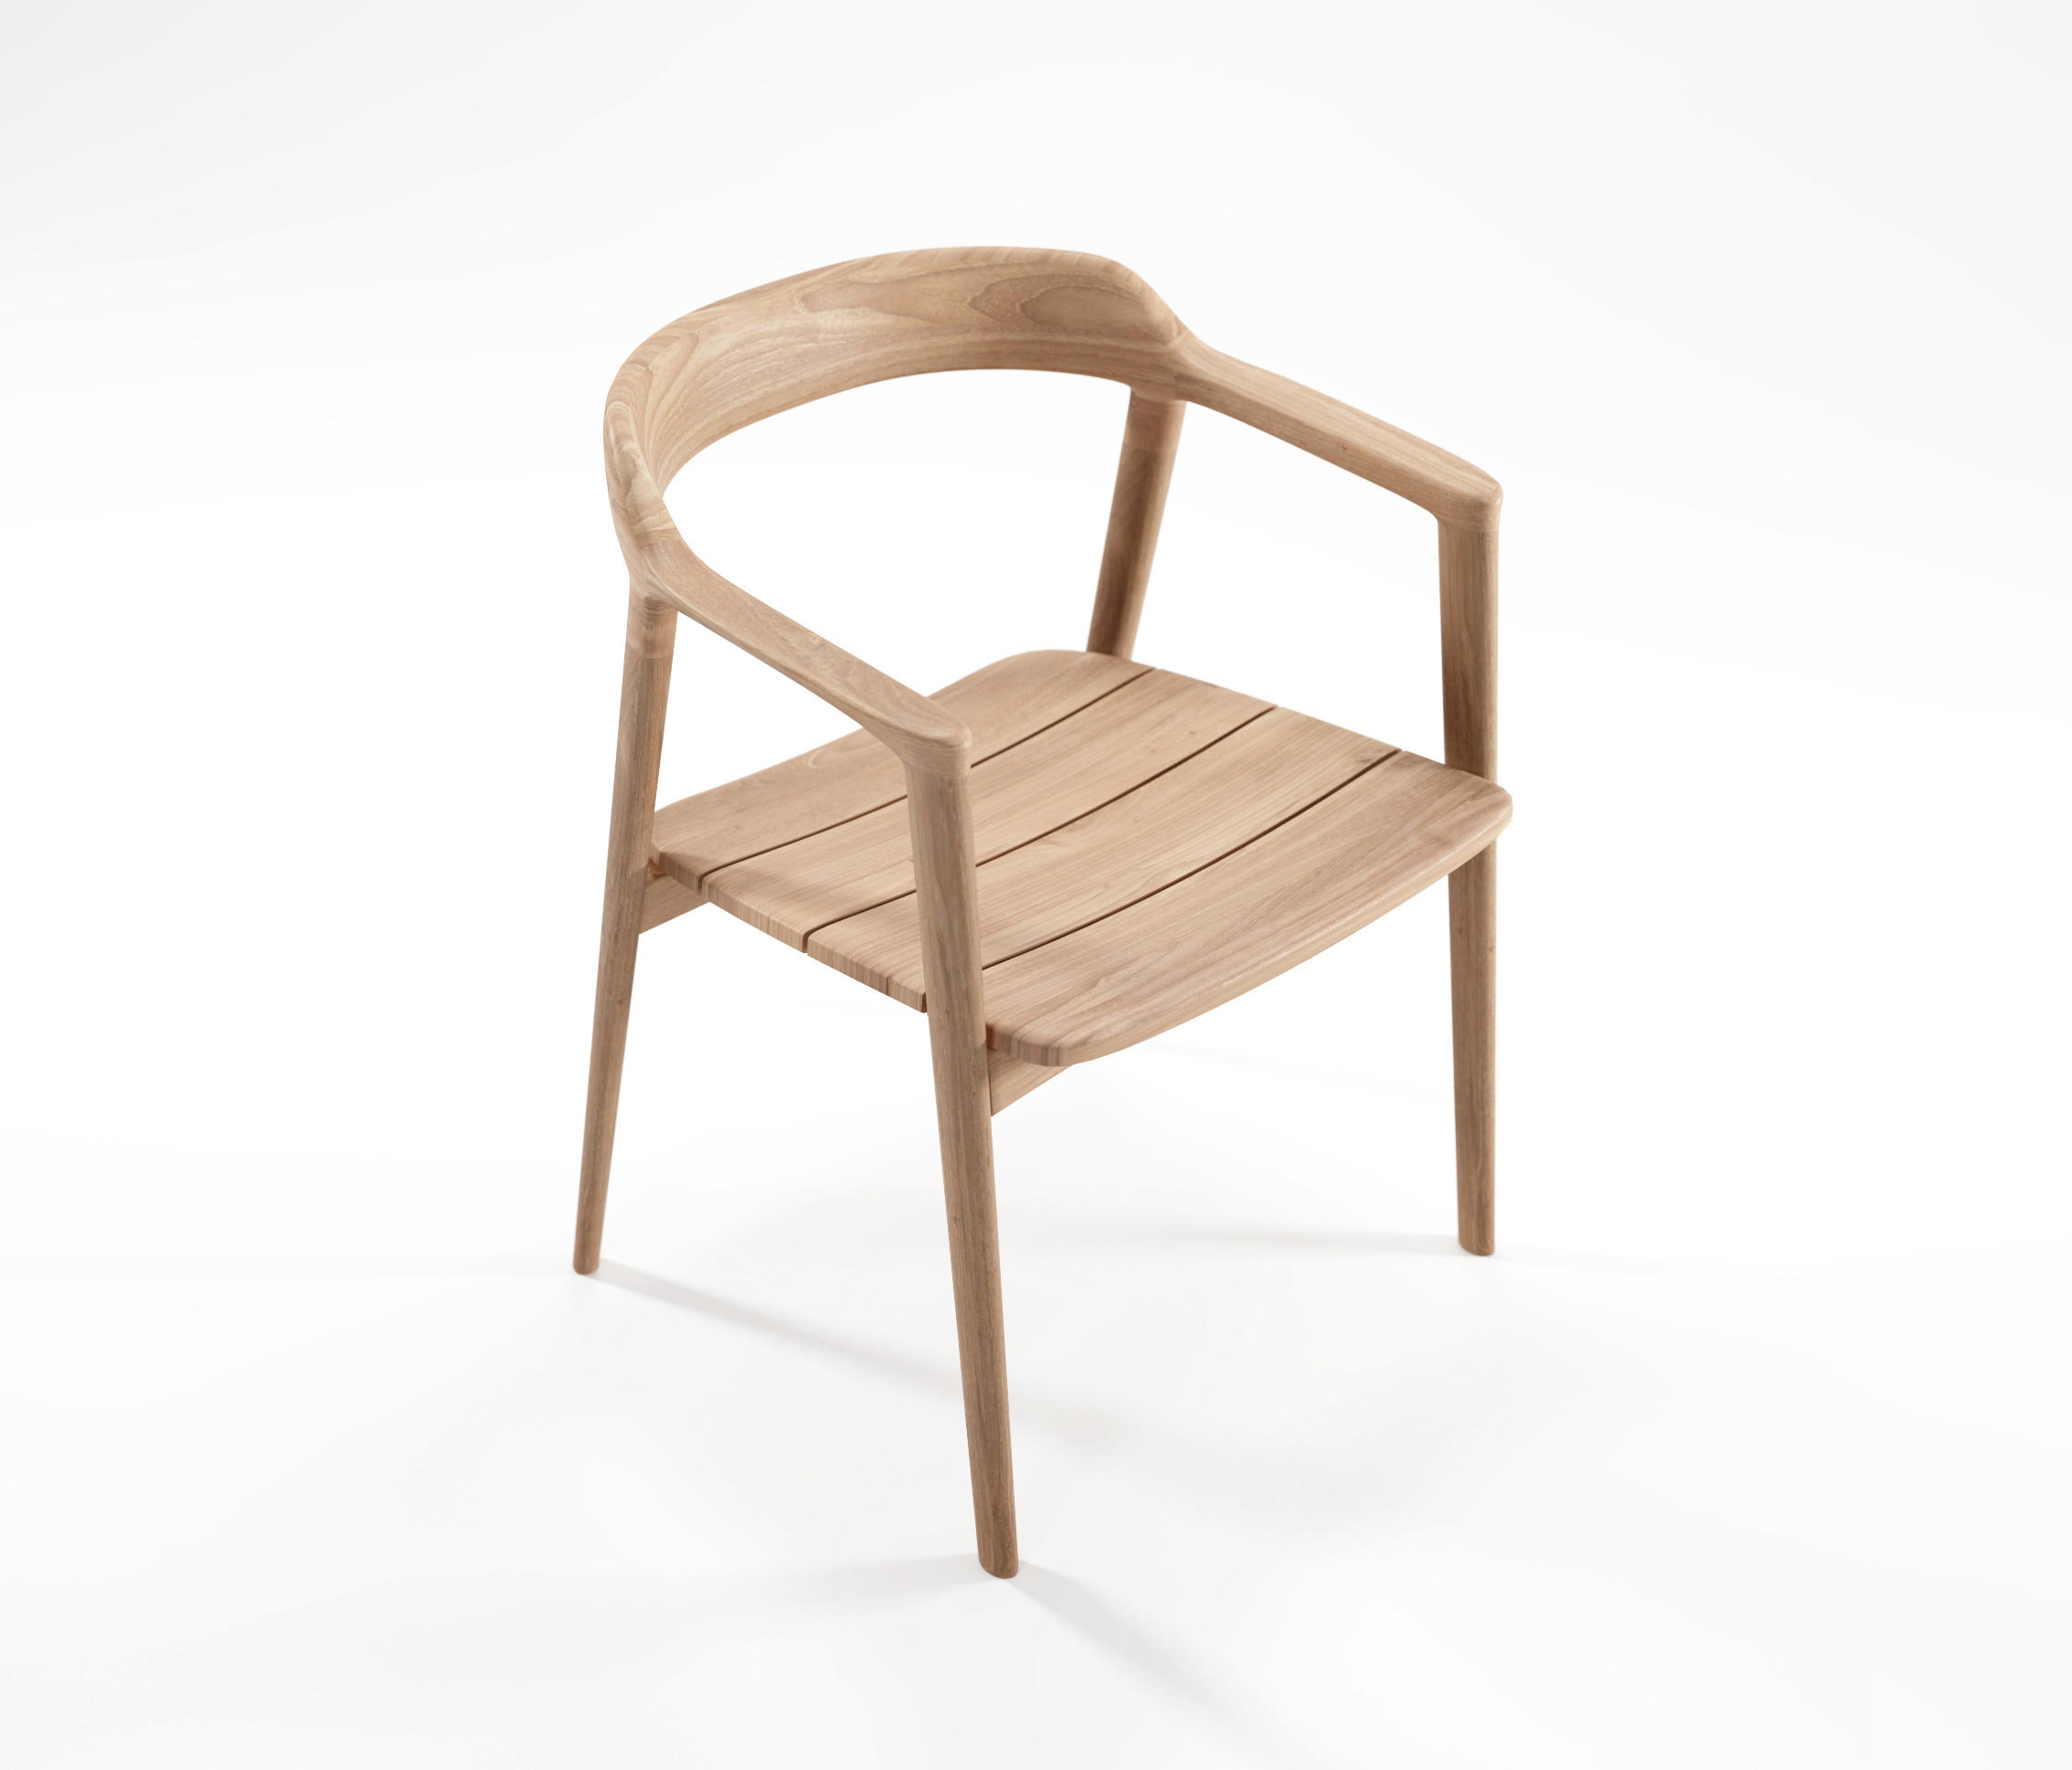 Grasshopper ARM CHAIR WITHOUT CUSHION By Karpenter | Chairs ...